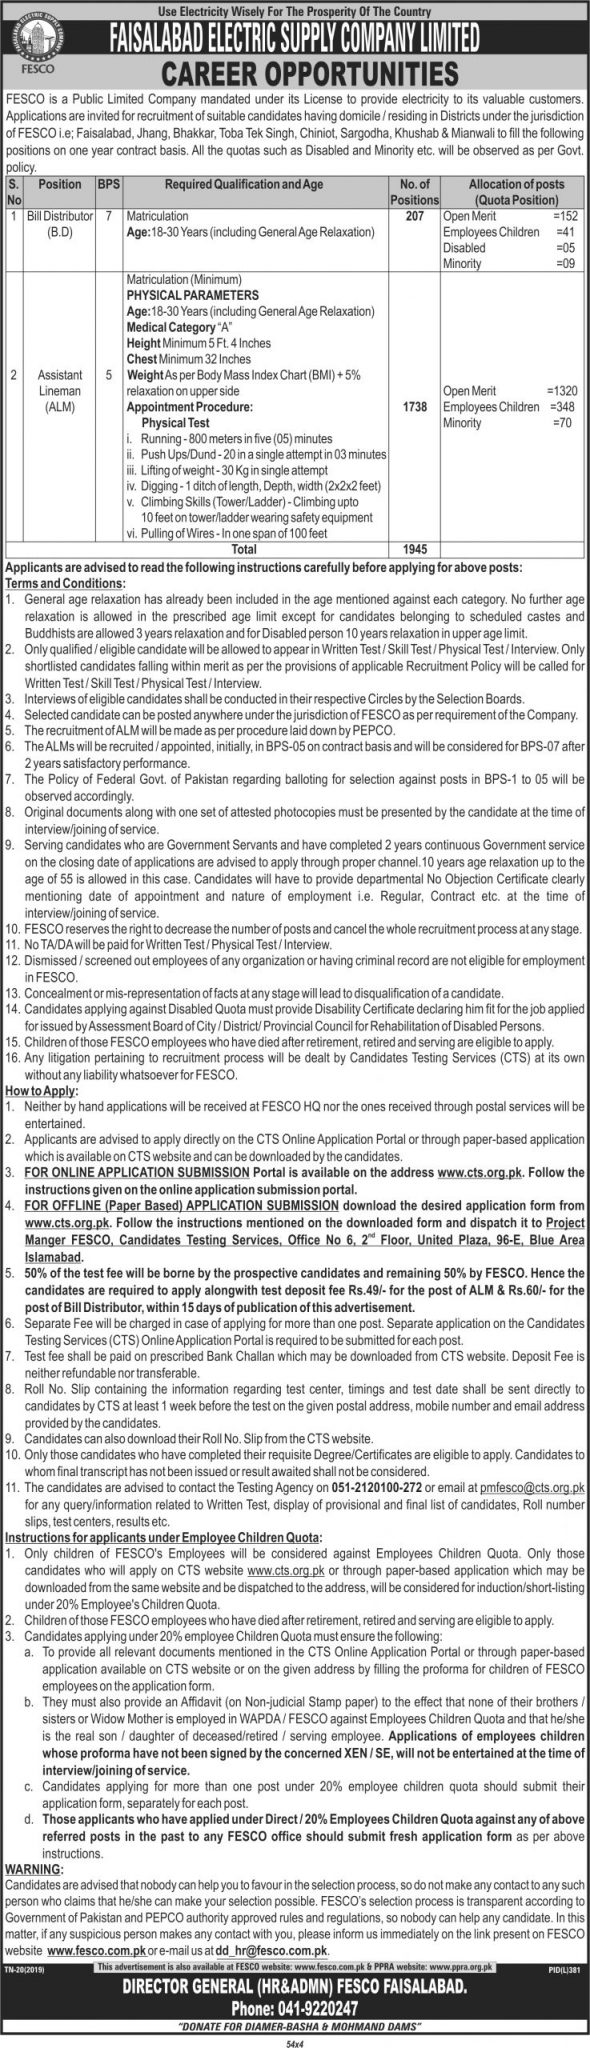 CTS FESCO Bill Distributor Jobs 2021 Application Form Roll Number Slips Test